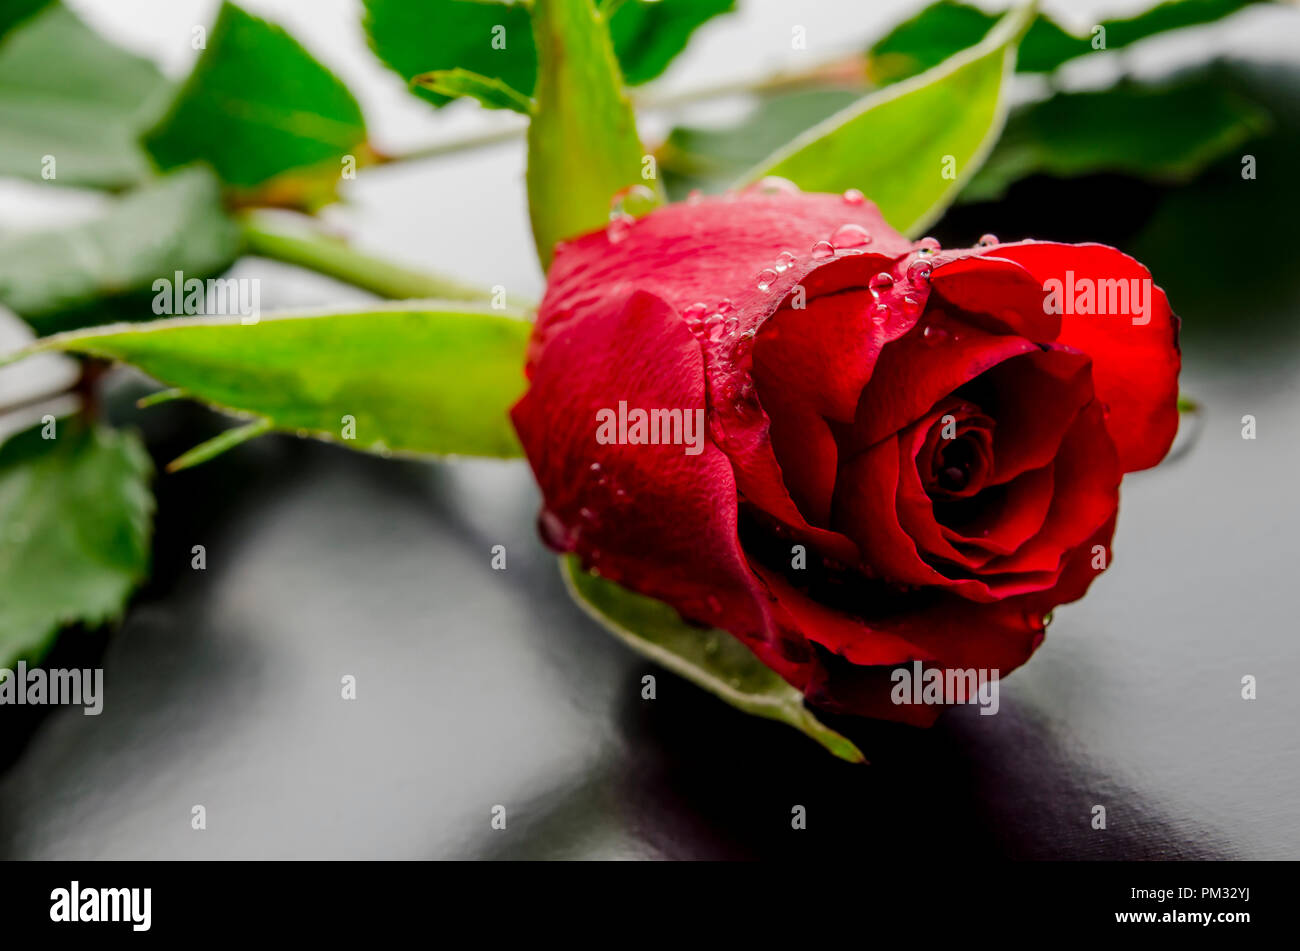 Beautiful Red Rose With Dew Drops Lying On A Black Background Stock Photo Alamy